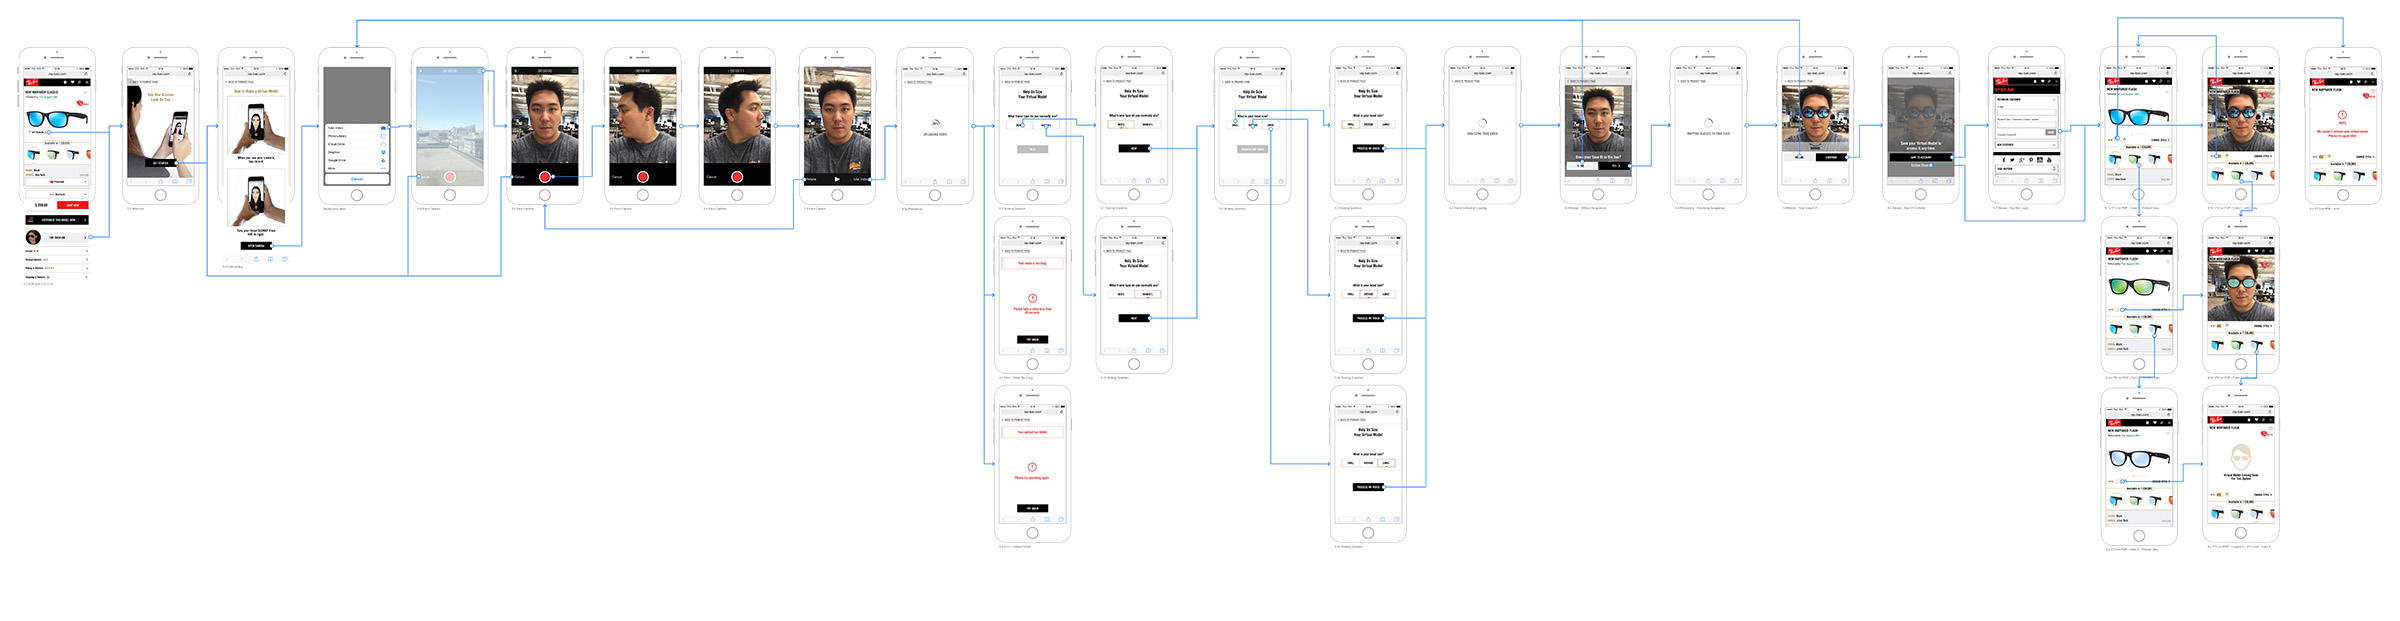 Ray-Ban Mobile VTO – Final User Flow